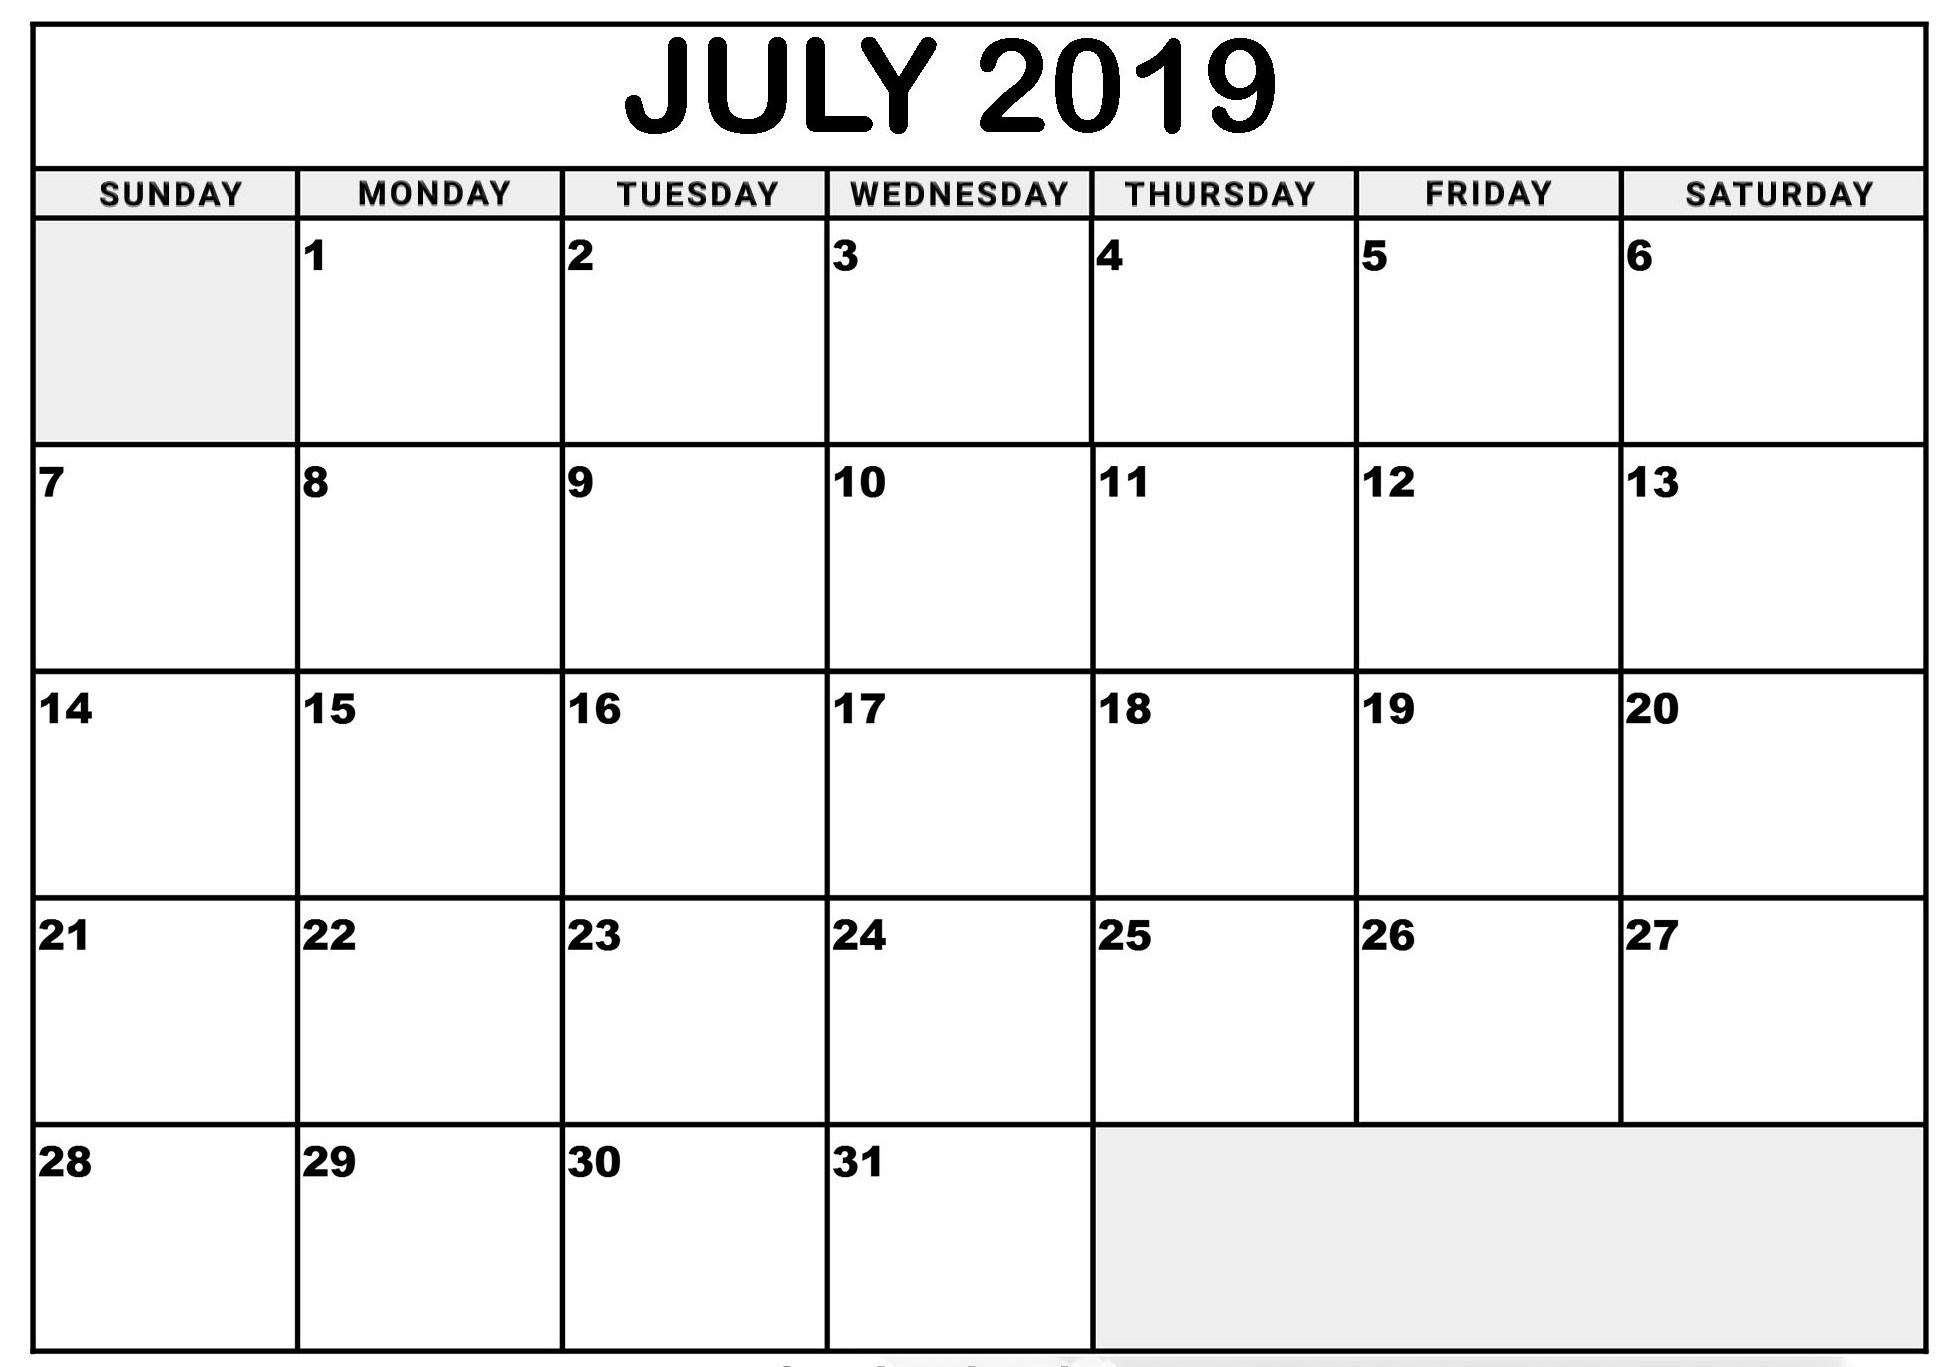 Calendar July 2019 with Holidays